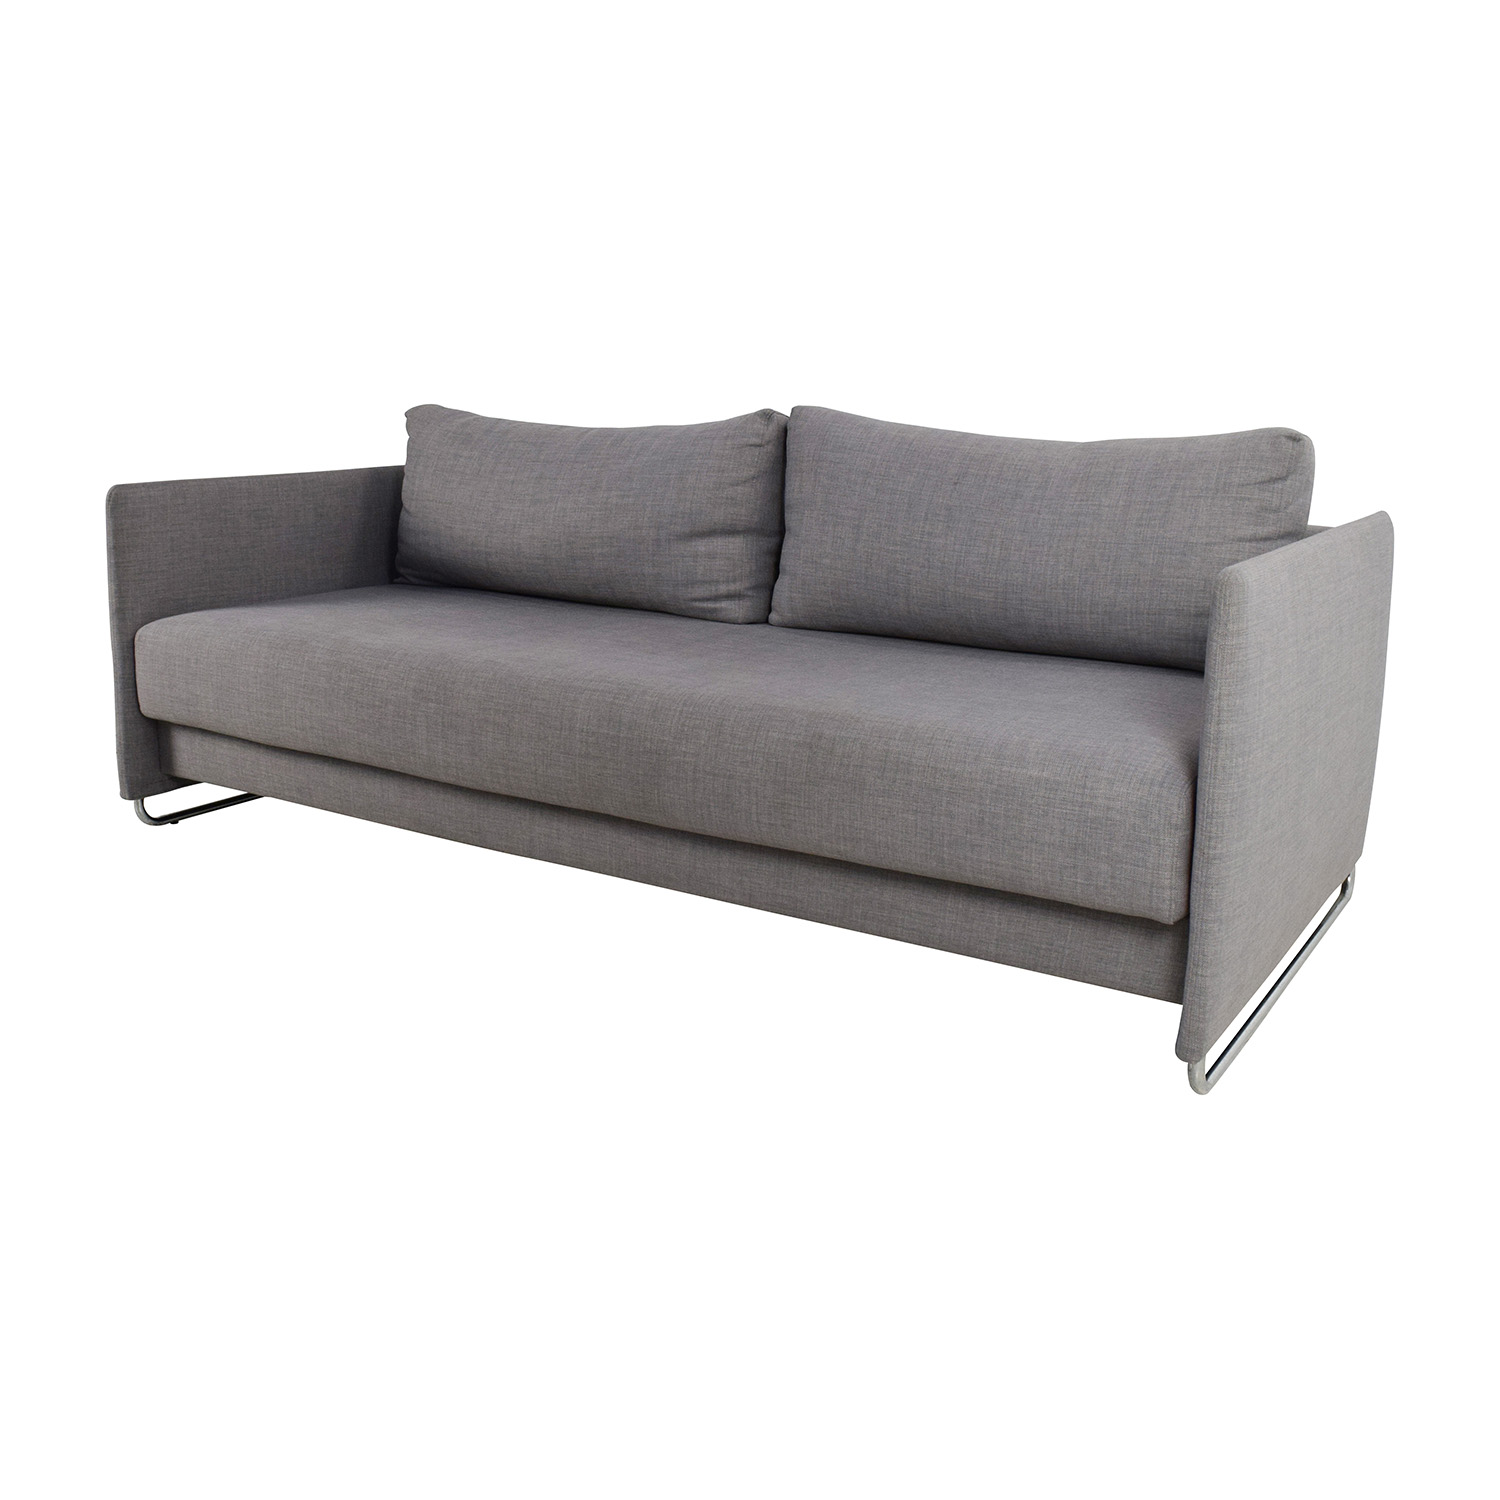 ... Shop CB2 Tandom Grey Sleeper Sofa CB2 ...